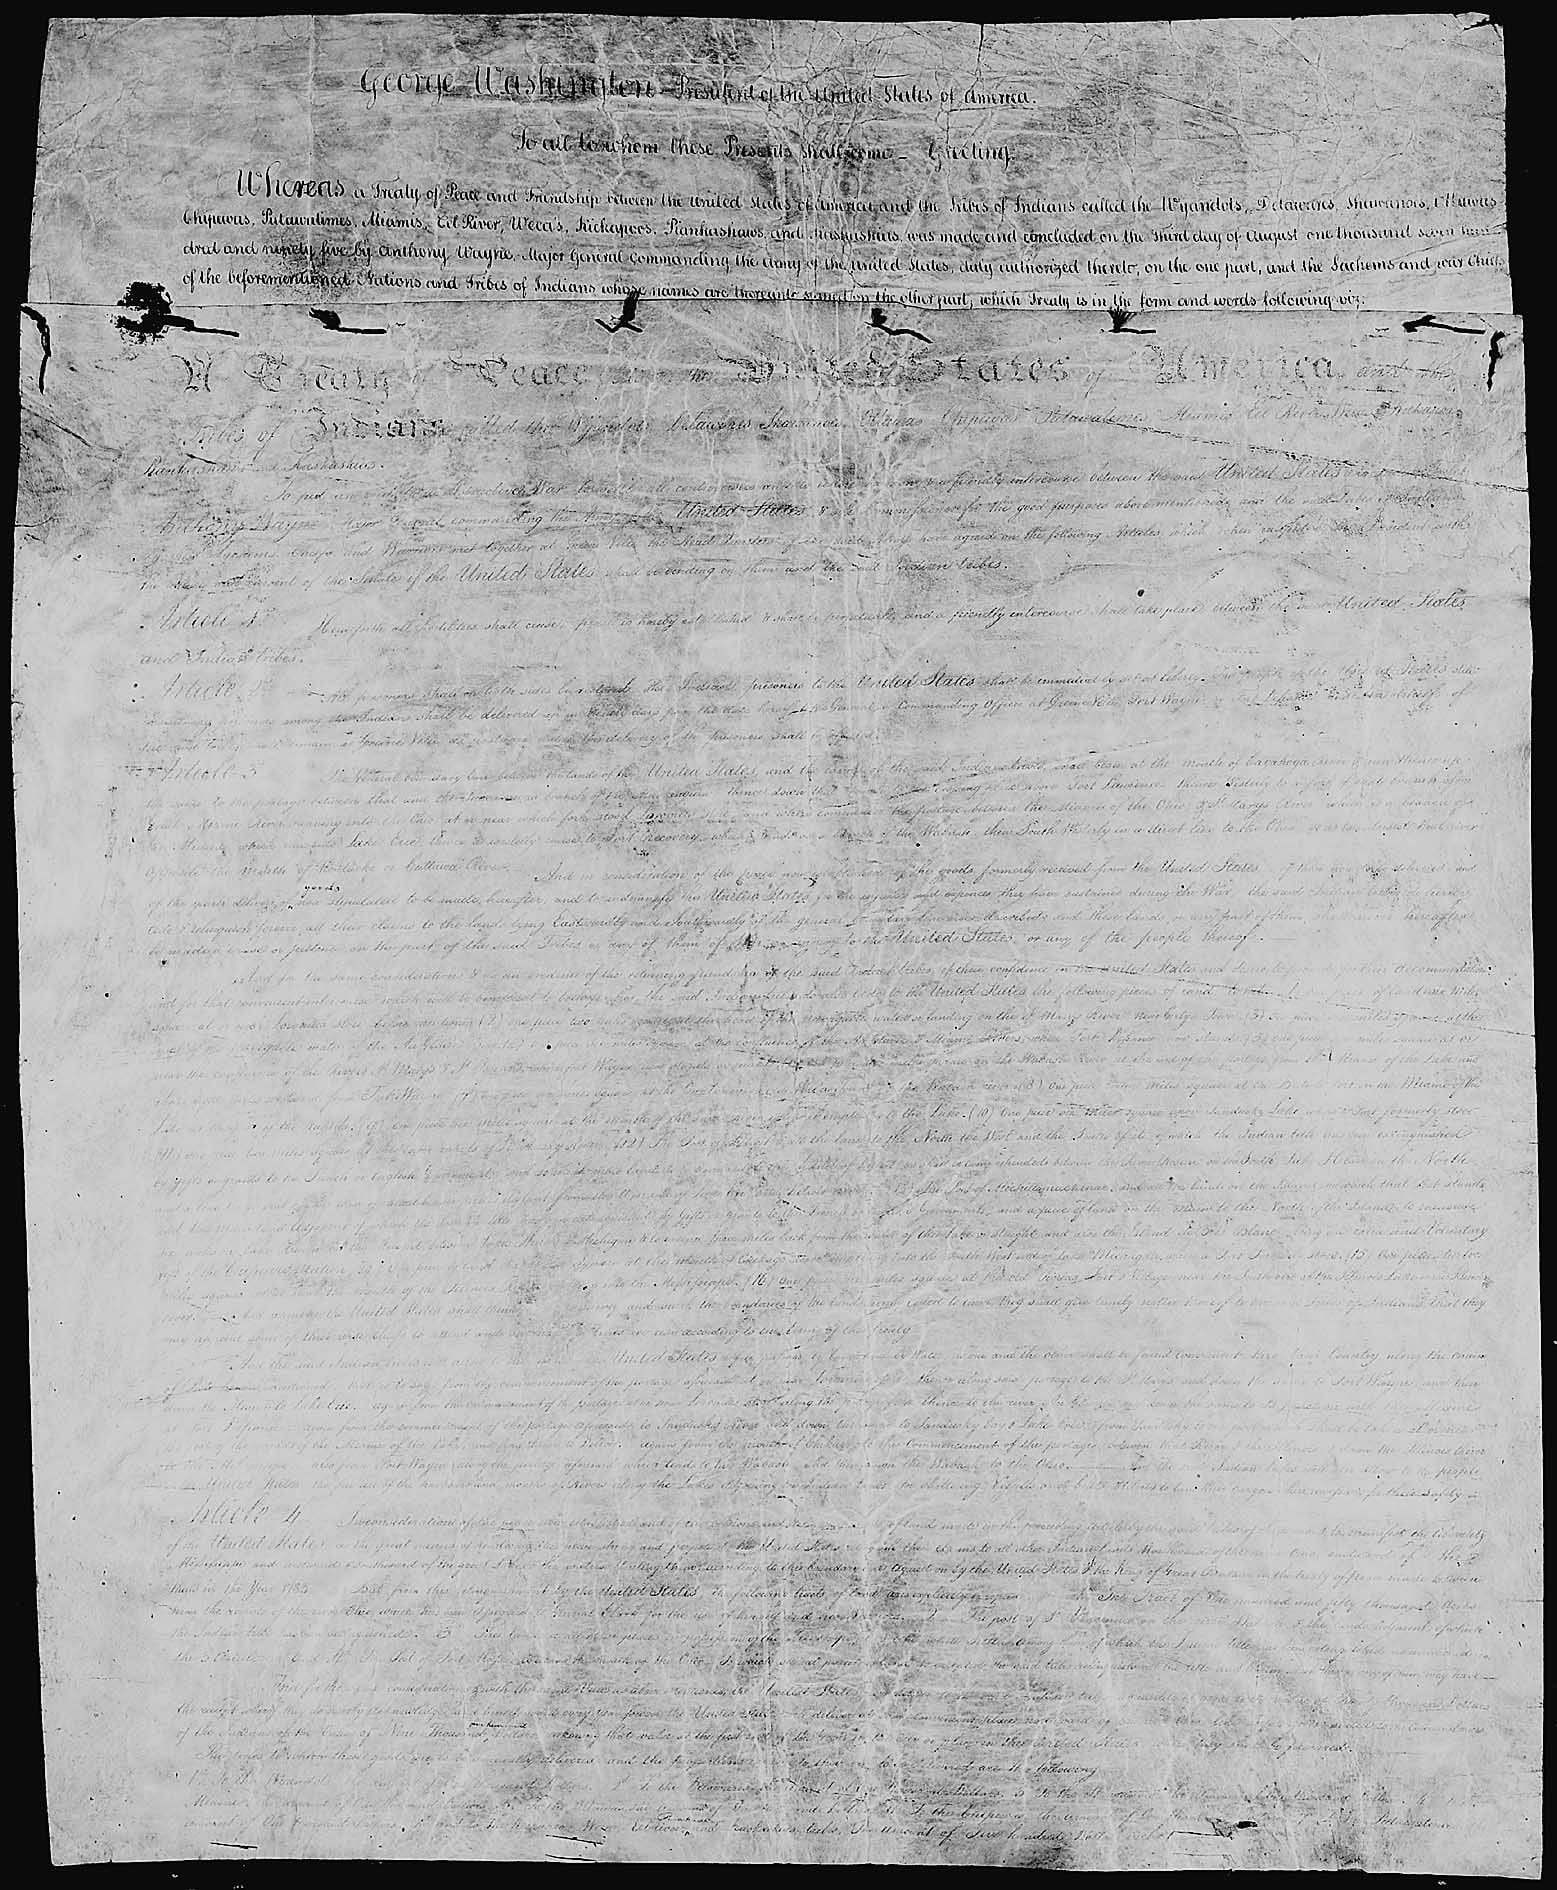 the treaty of greenville an agreement Which treaty ended the war of 1812 (a) the treaty of paris (b) the treaty of greenville (c) the treaty of get the answers you need, now.